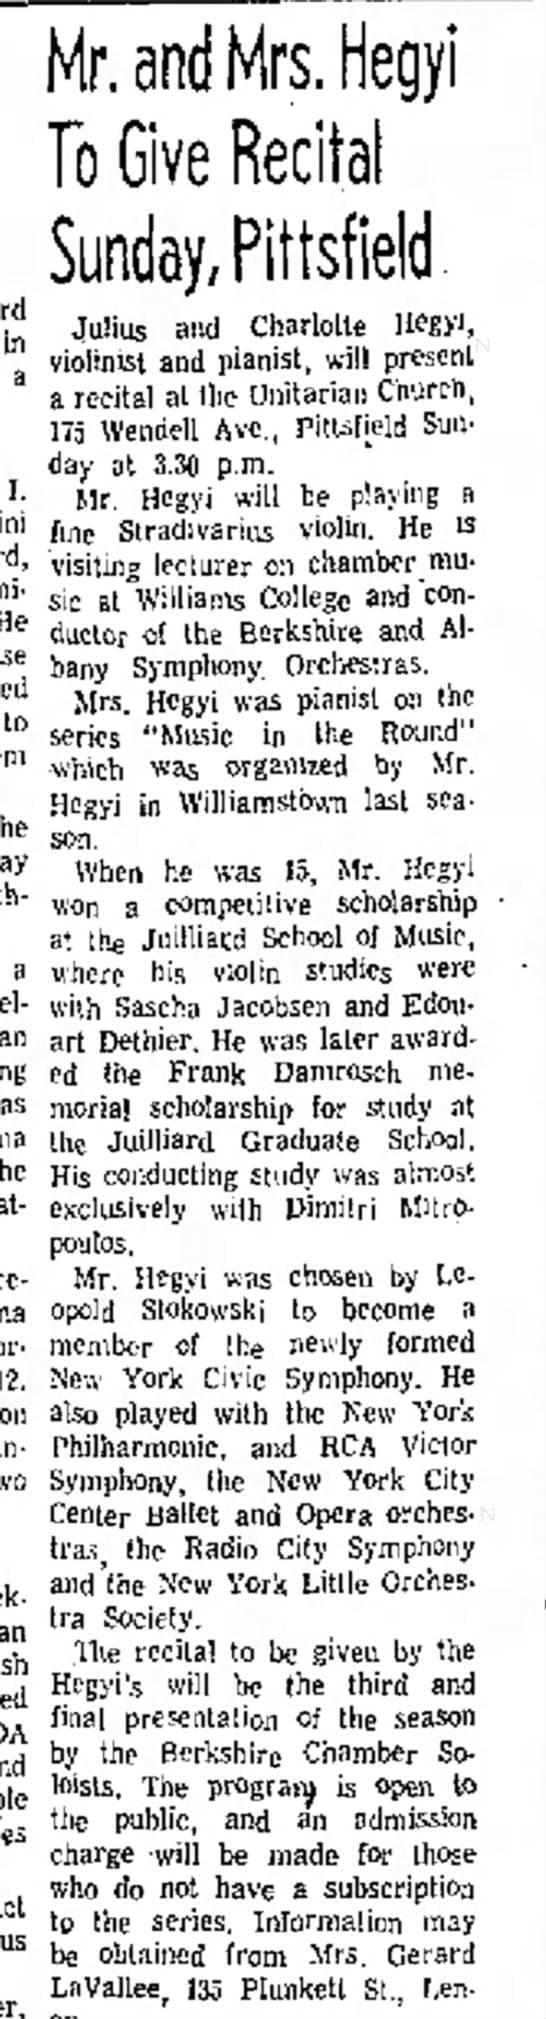 Berkshire Chamber Soloists 18 May 1966